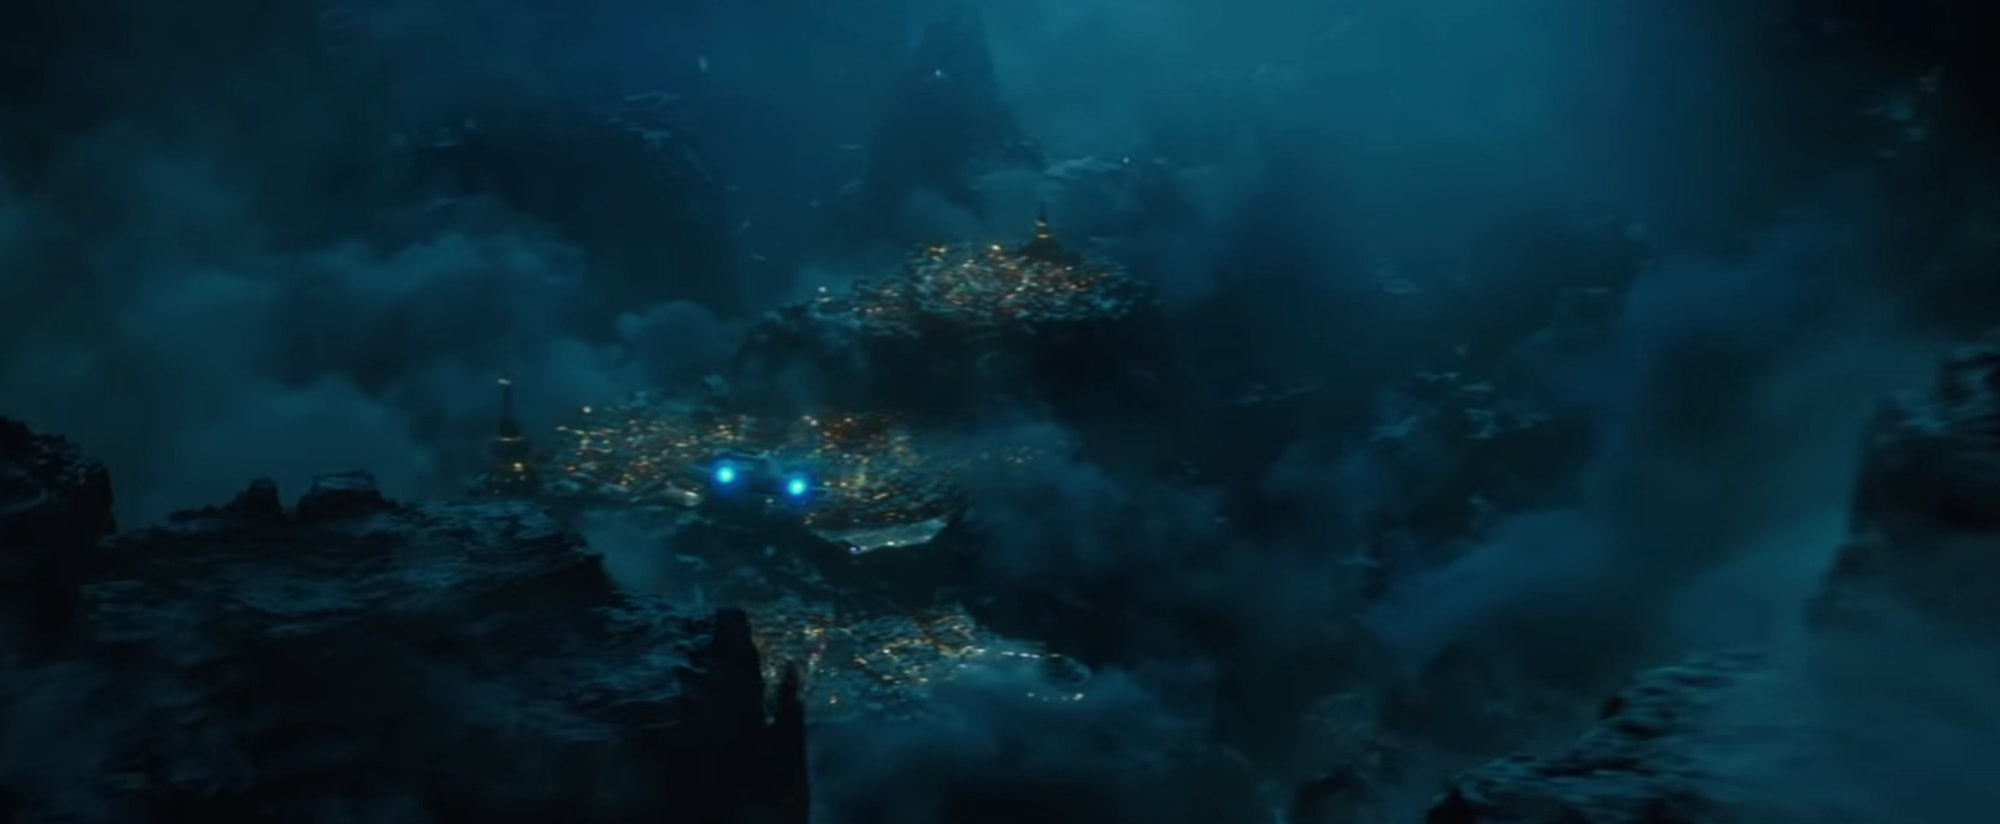 The mystery planet from 'Star Wars: Rise of Skywalker'